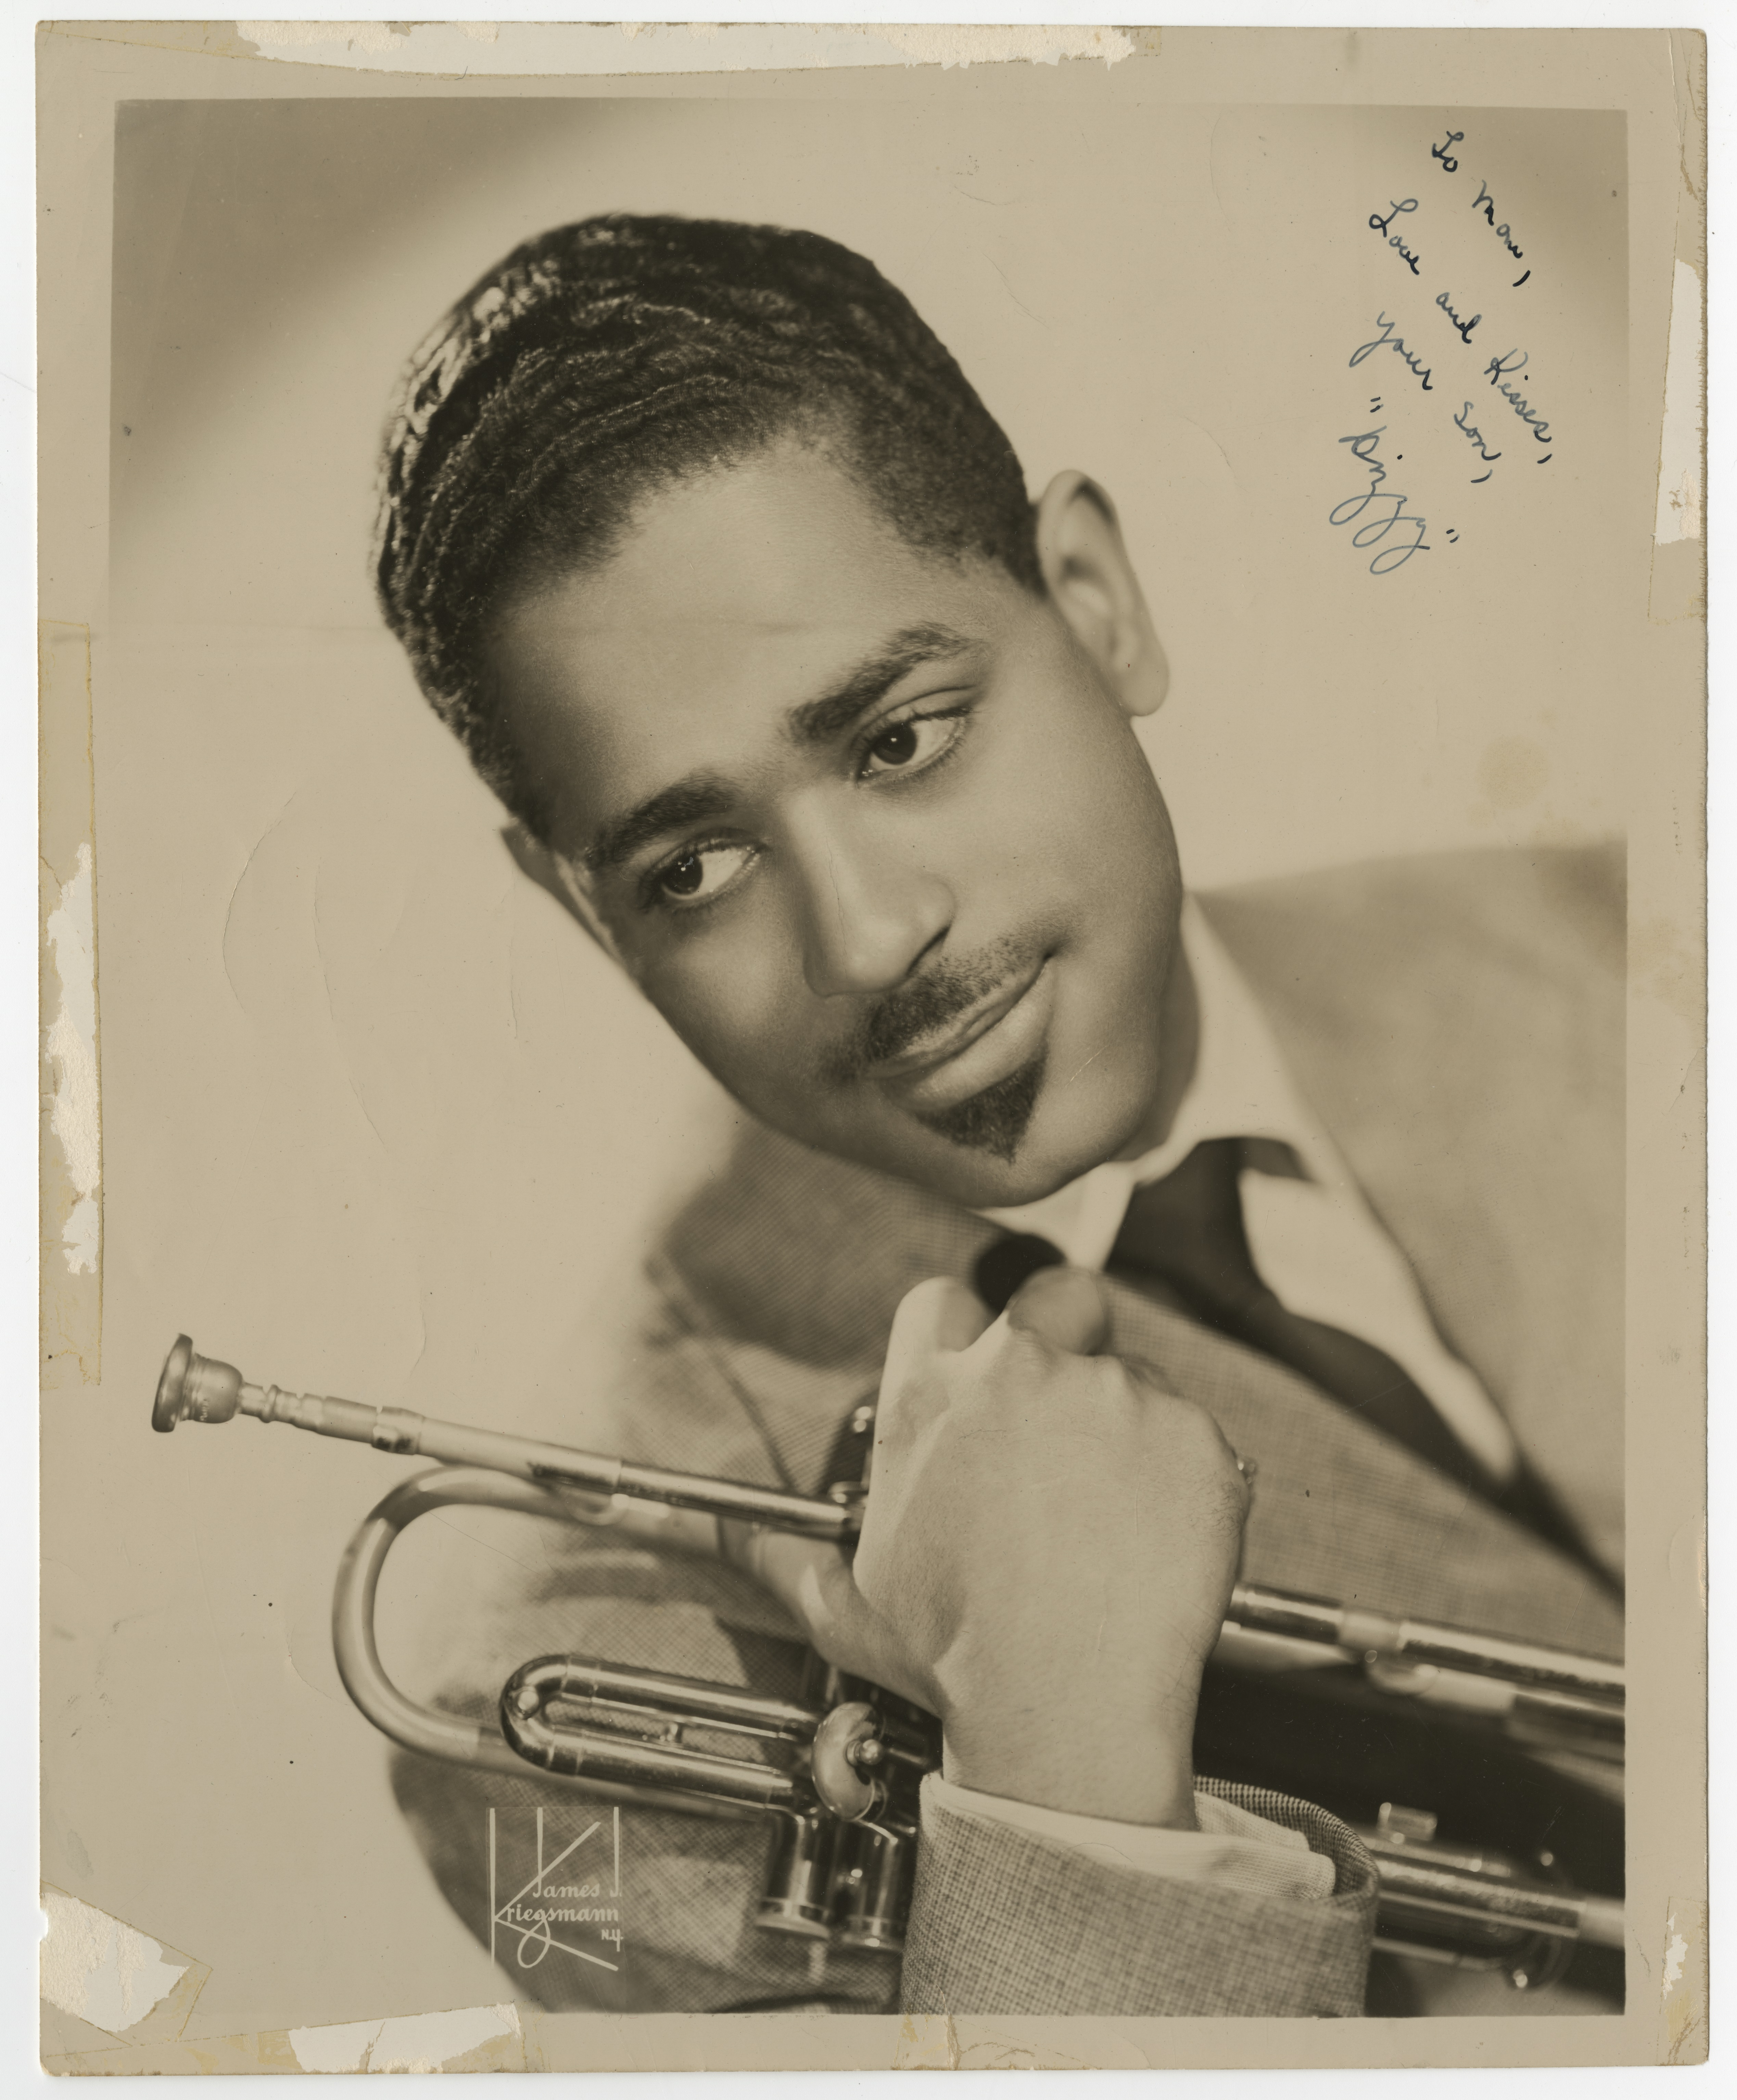 A sepia toned headshot of a young Dizzy Gillespie posing with his trumpet. He wears a suit and tie and has a tidy mustache. The inscription reads